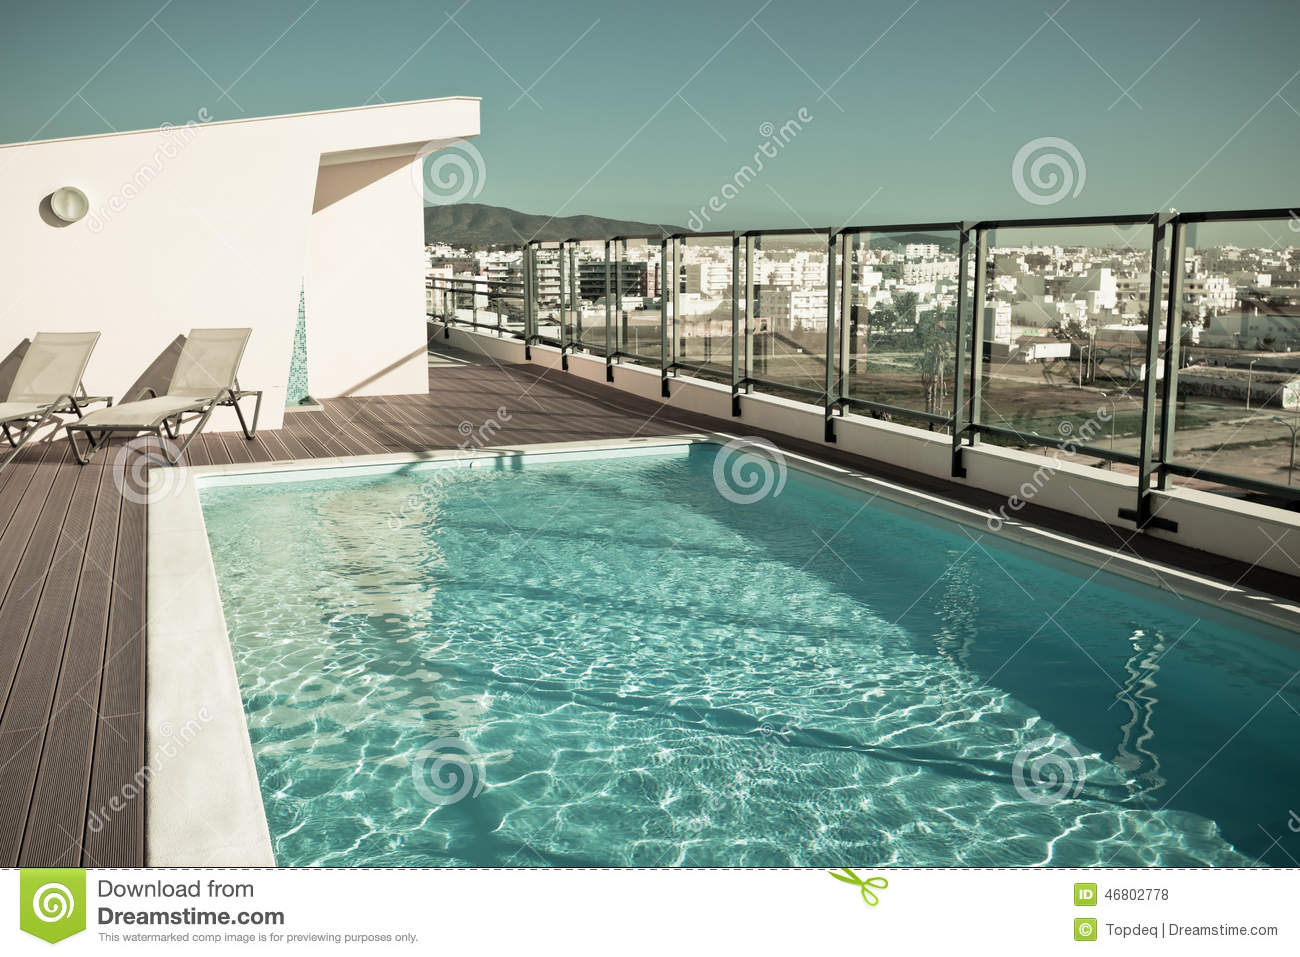 Outdoor swimming pool at a house roof stock photo image - How big is an average swimming pool ...